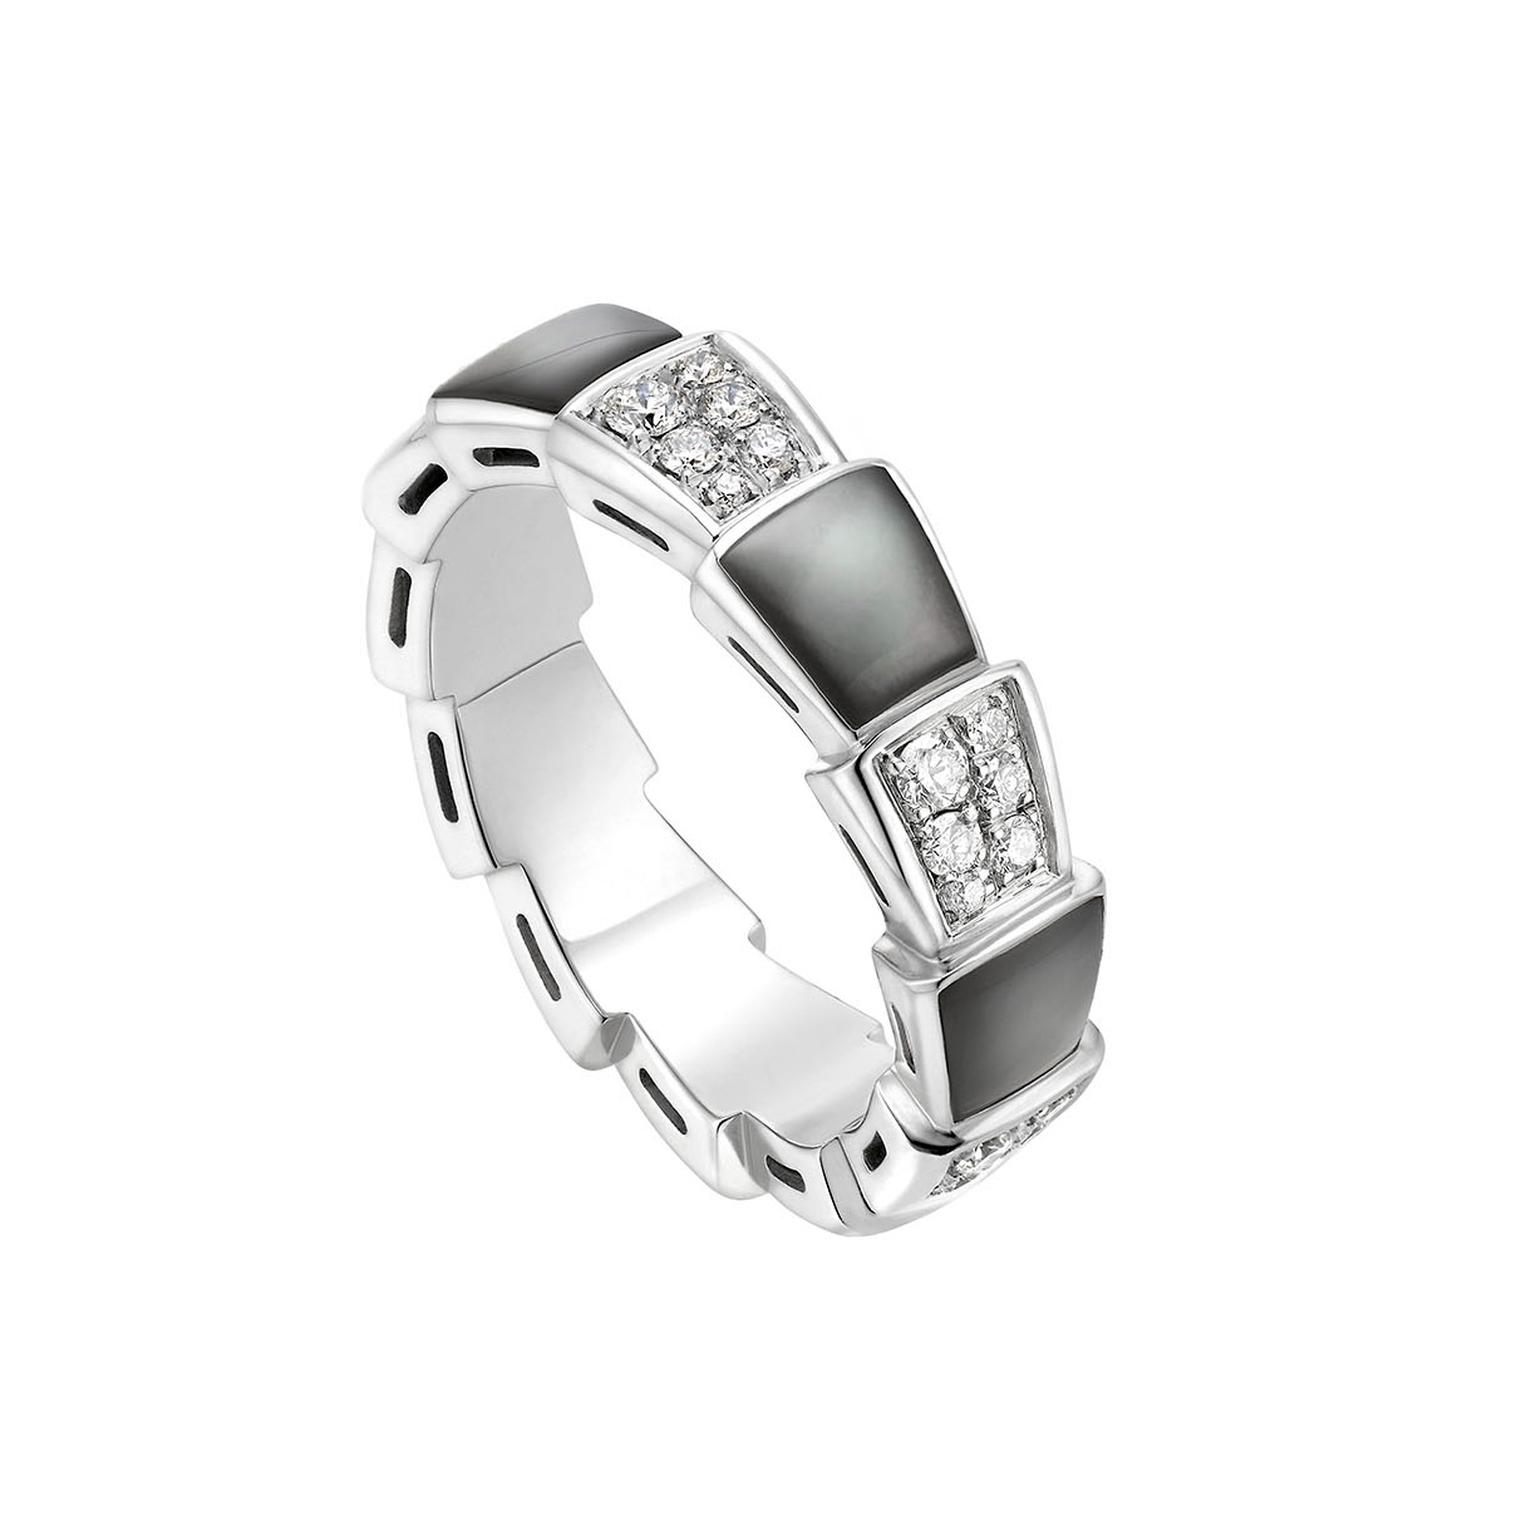 Bulgari Viper band in white gold and black mother-of-pearl